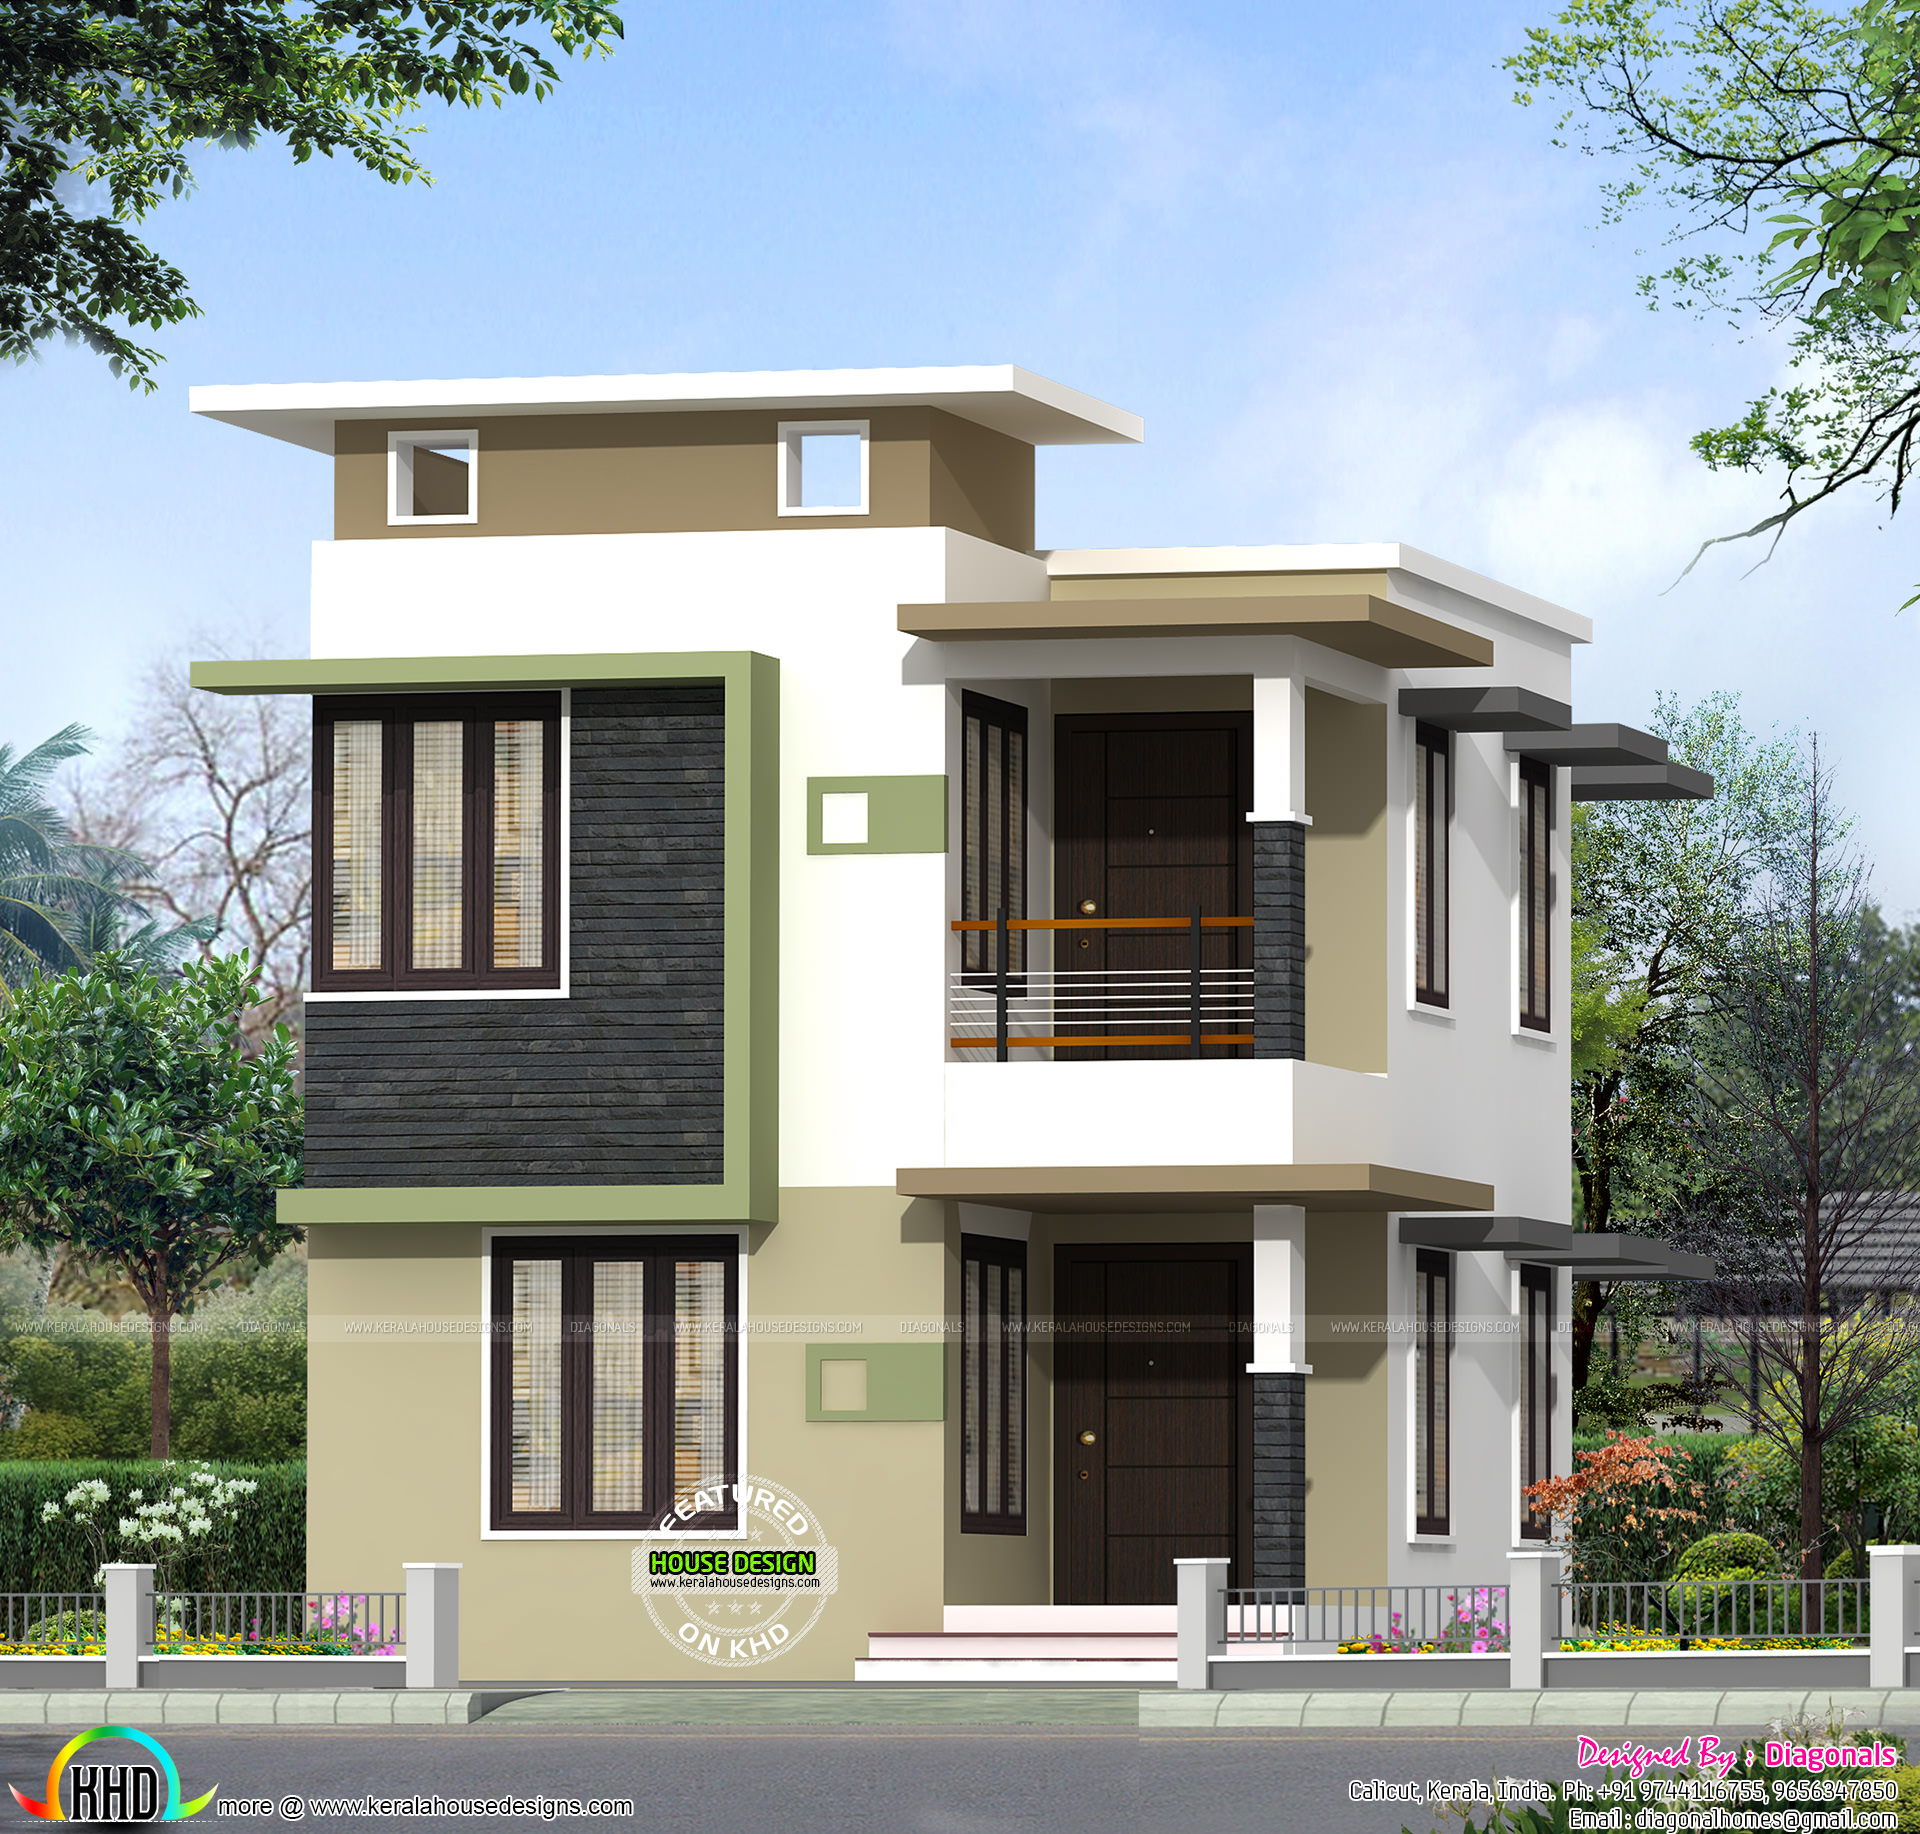 Home design 750 sq ft for 4 bedroom kerala house plans and elevations